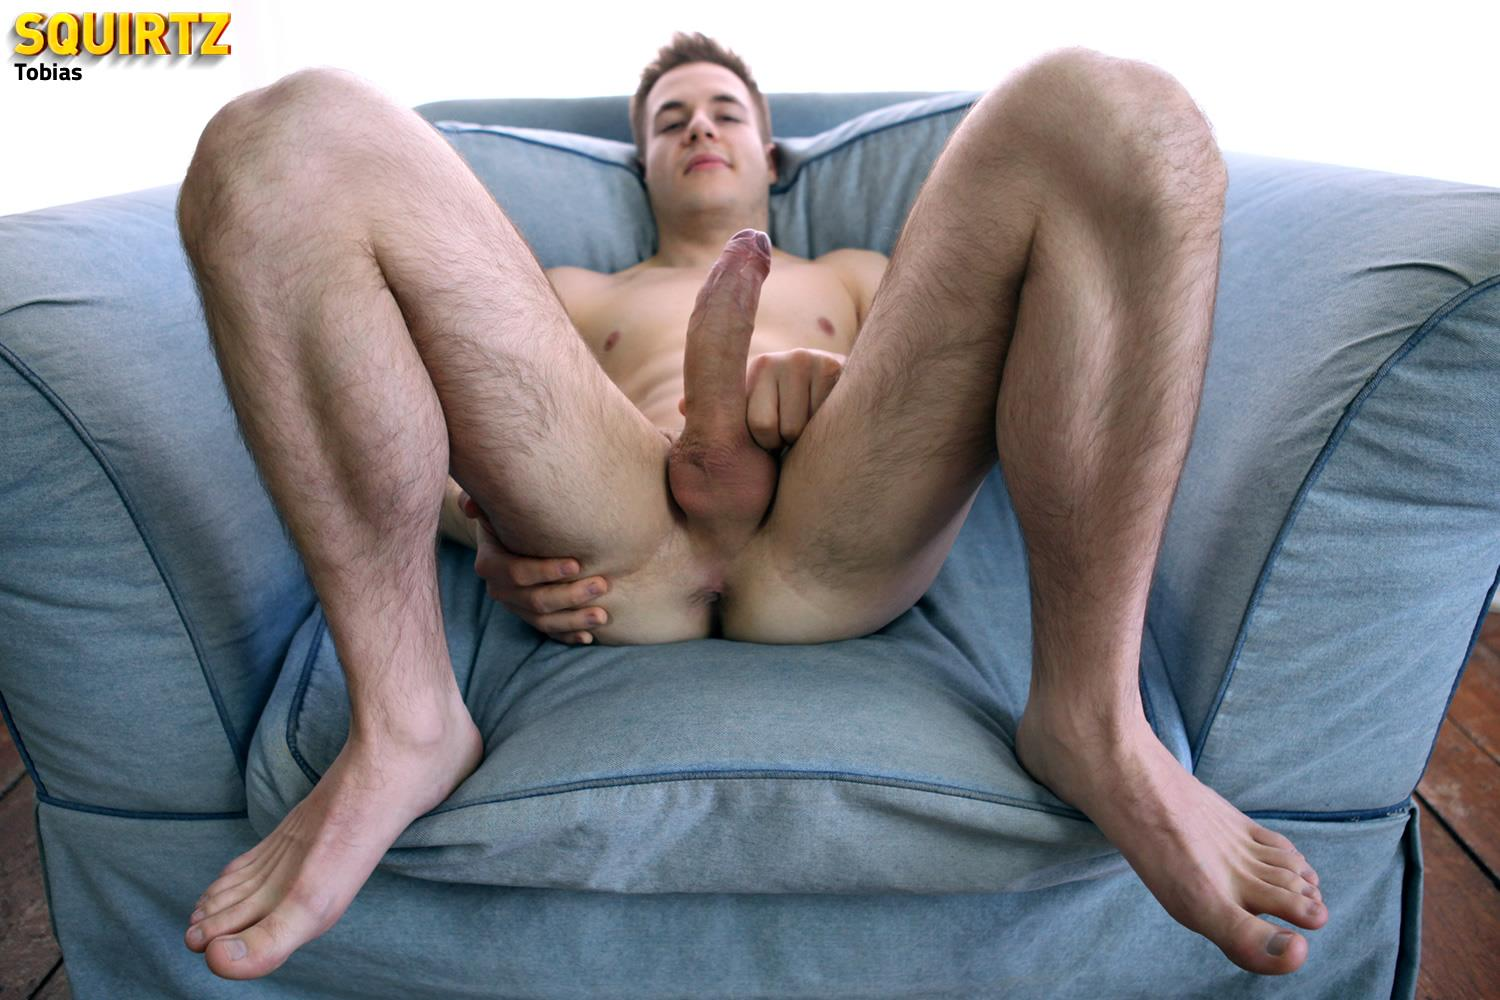 Squirtz-Tobias-Hairy-Legged-Twink-Masturbating-Big-Uncut-Cock-Amateur-Gay-Porn-10 Amateur Hairy Leg Twink Stroking His Big Uncut Cock